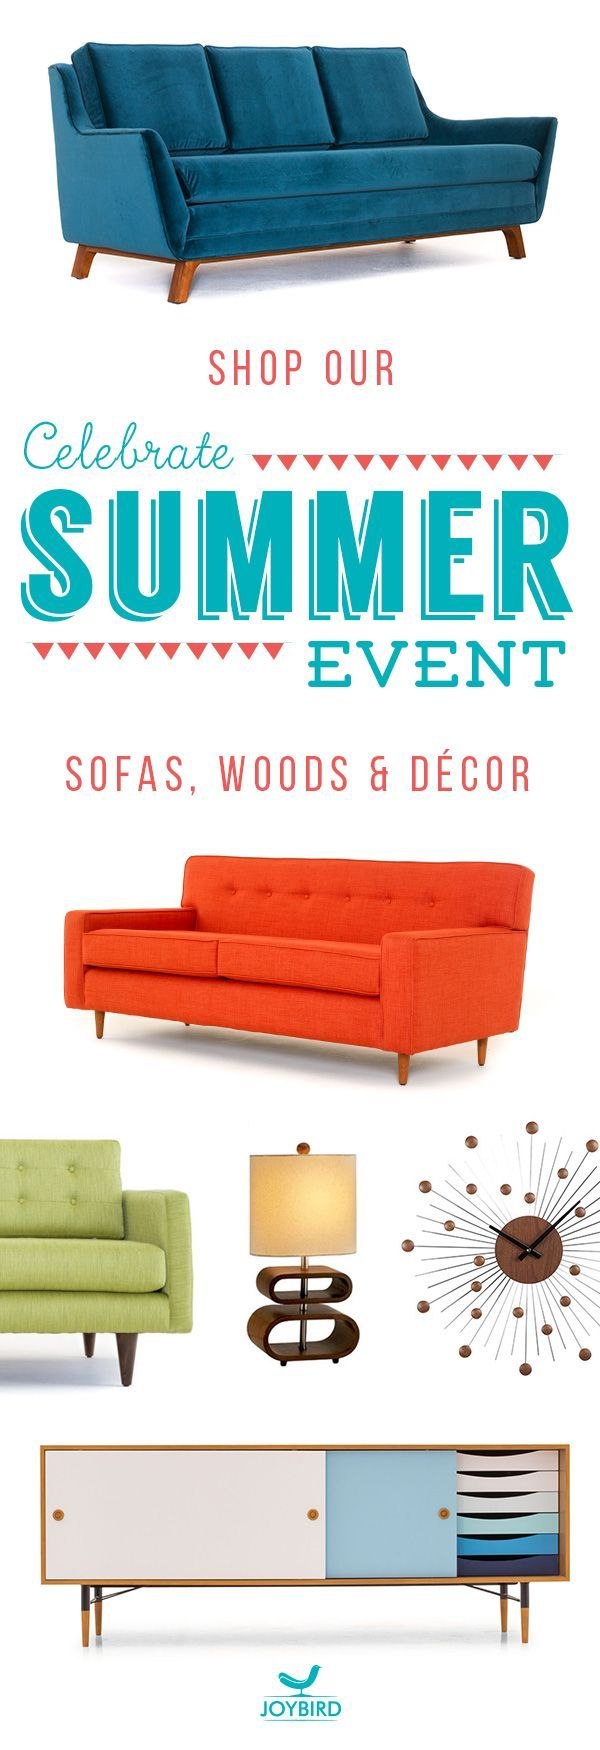 summer furniture sale. Why Be Generic When You Can Stand Out With Mid Century Modern Furniture From Joybird? Take Off Sofas, Wood Items, And Decor Right Now During Our Summer Sale L